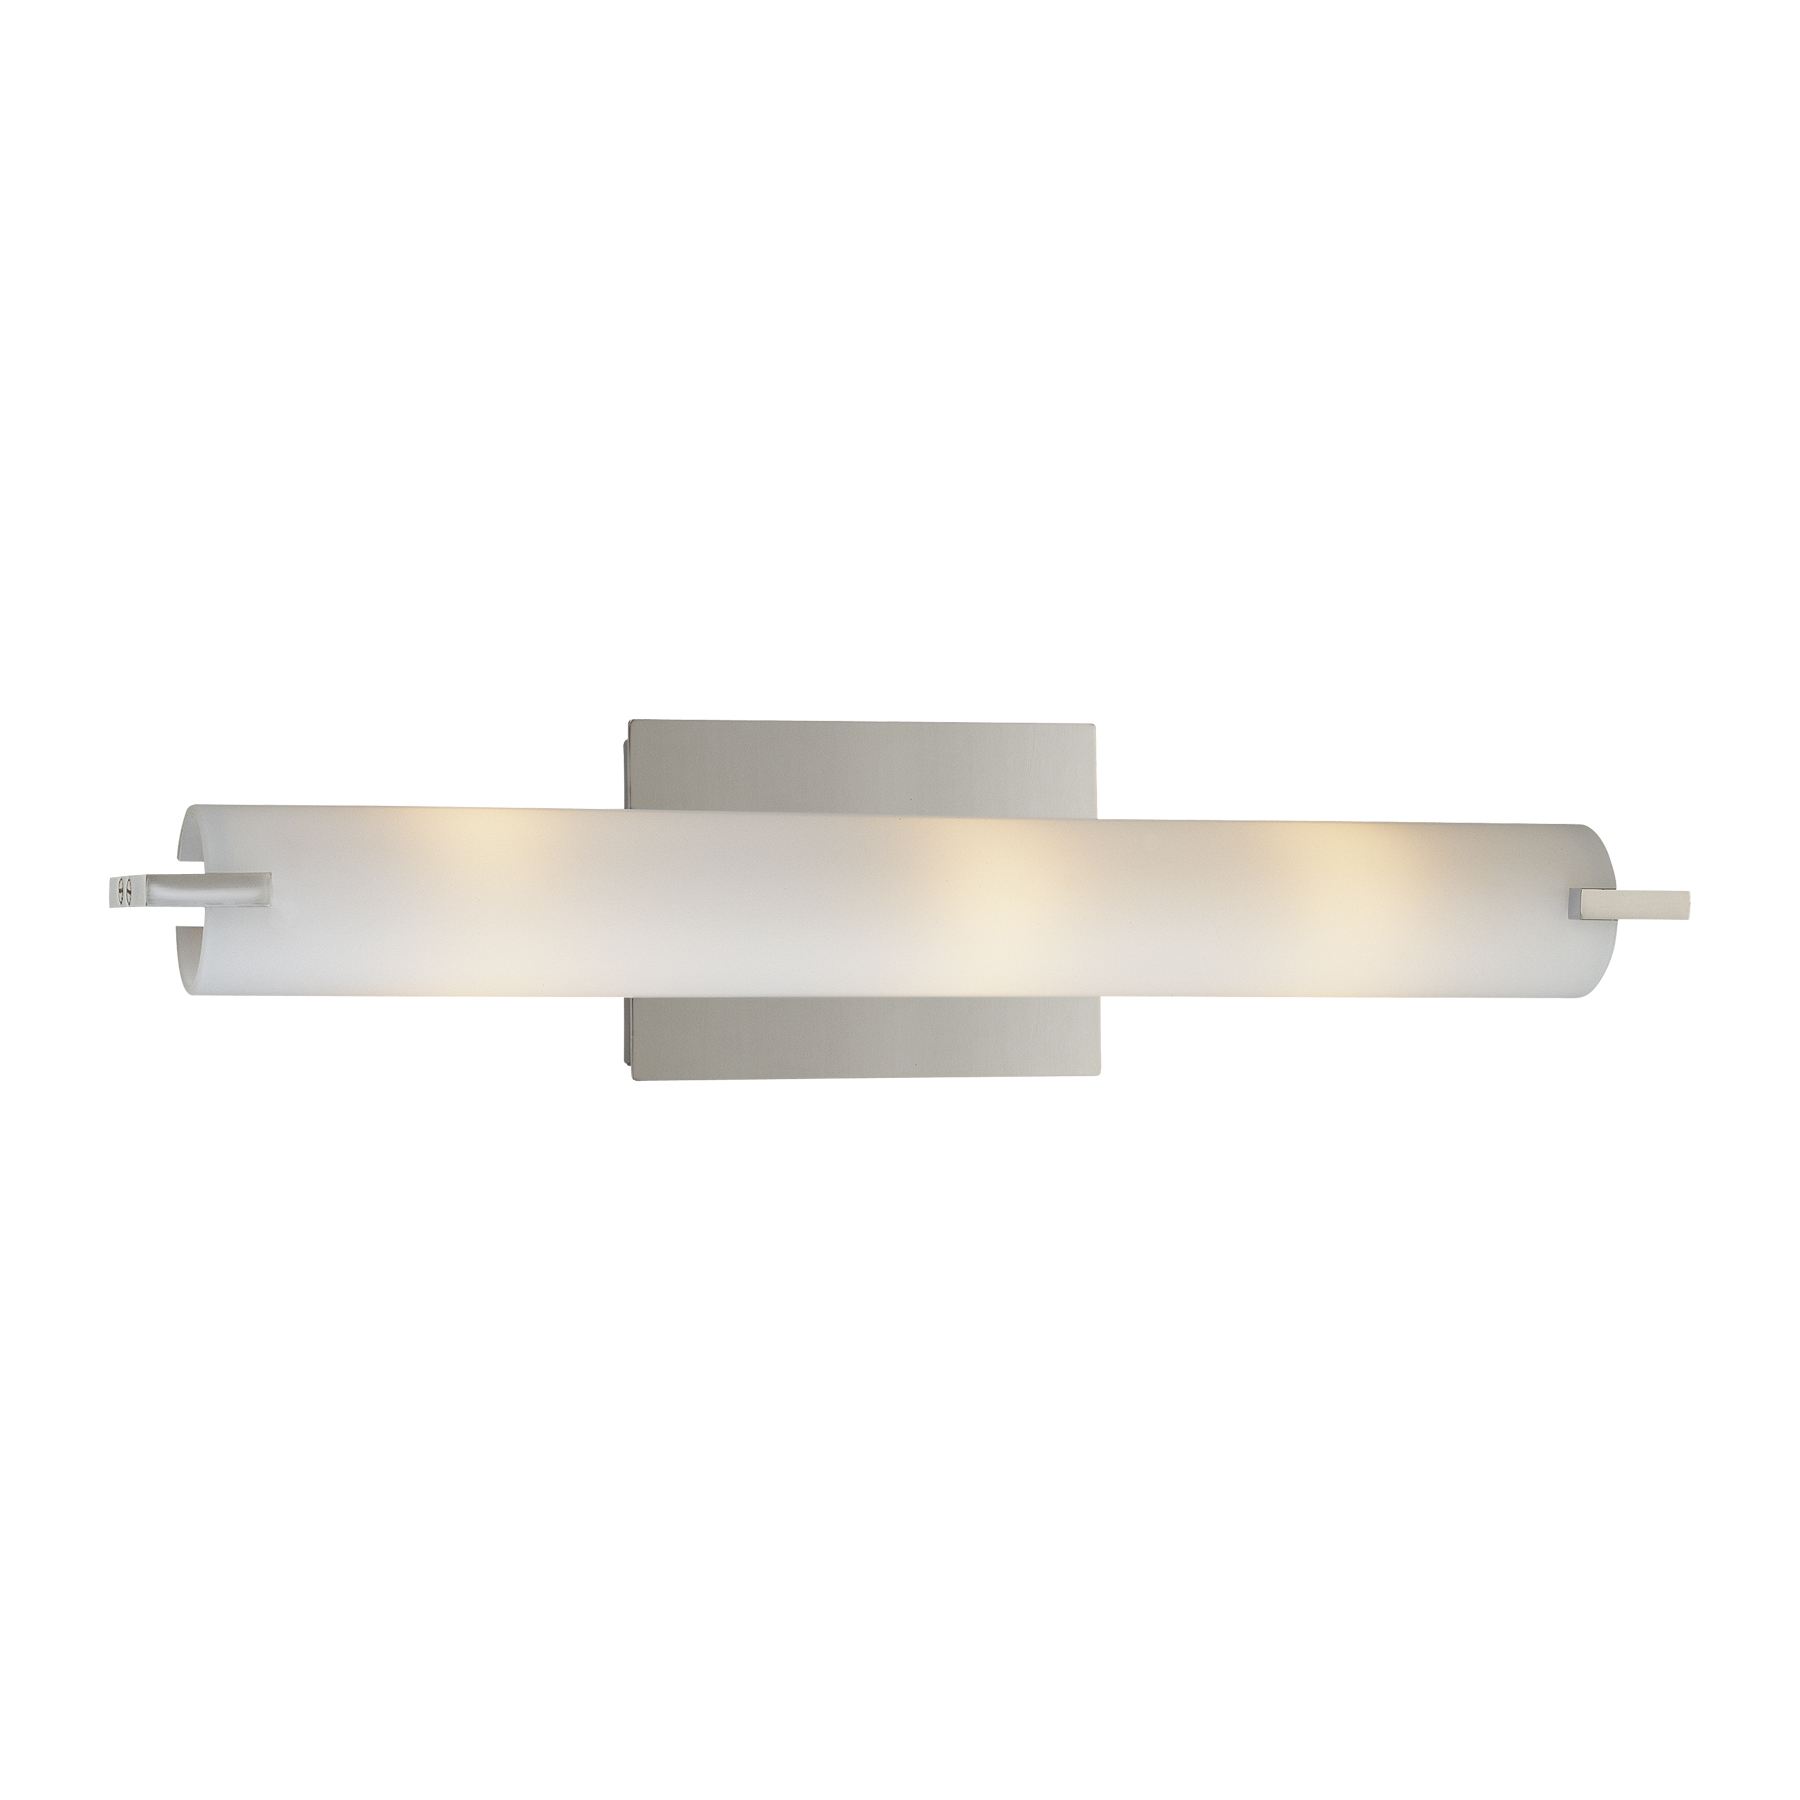 Tube Light Bath Bar By George Kovacs P5044 077